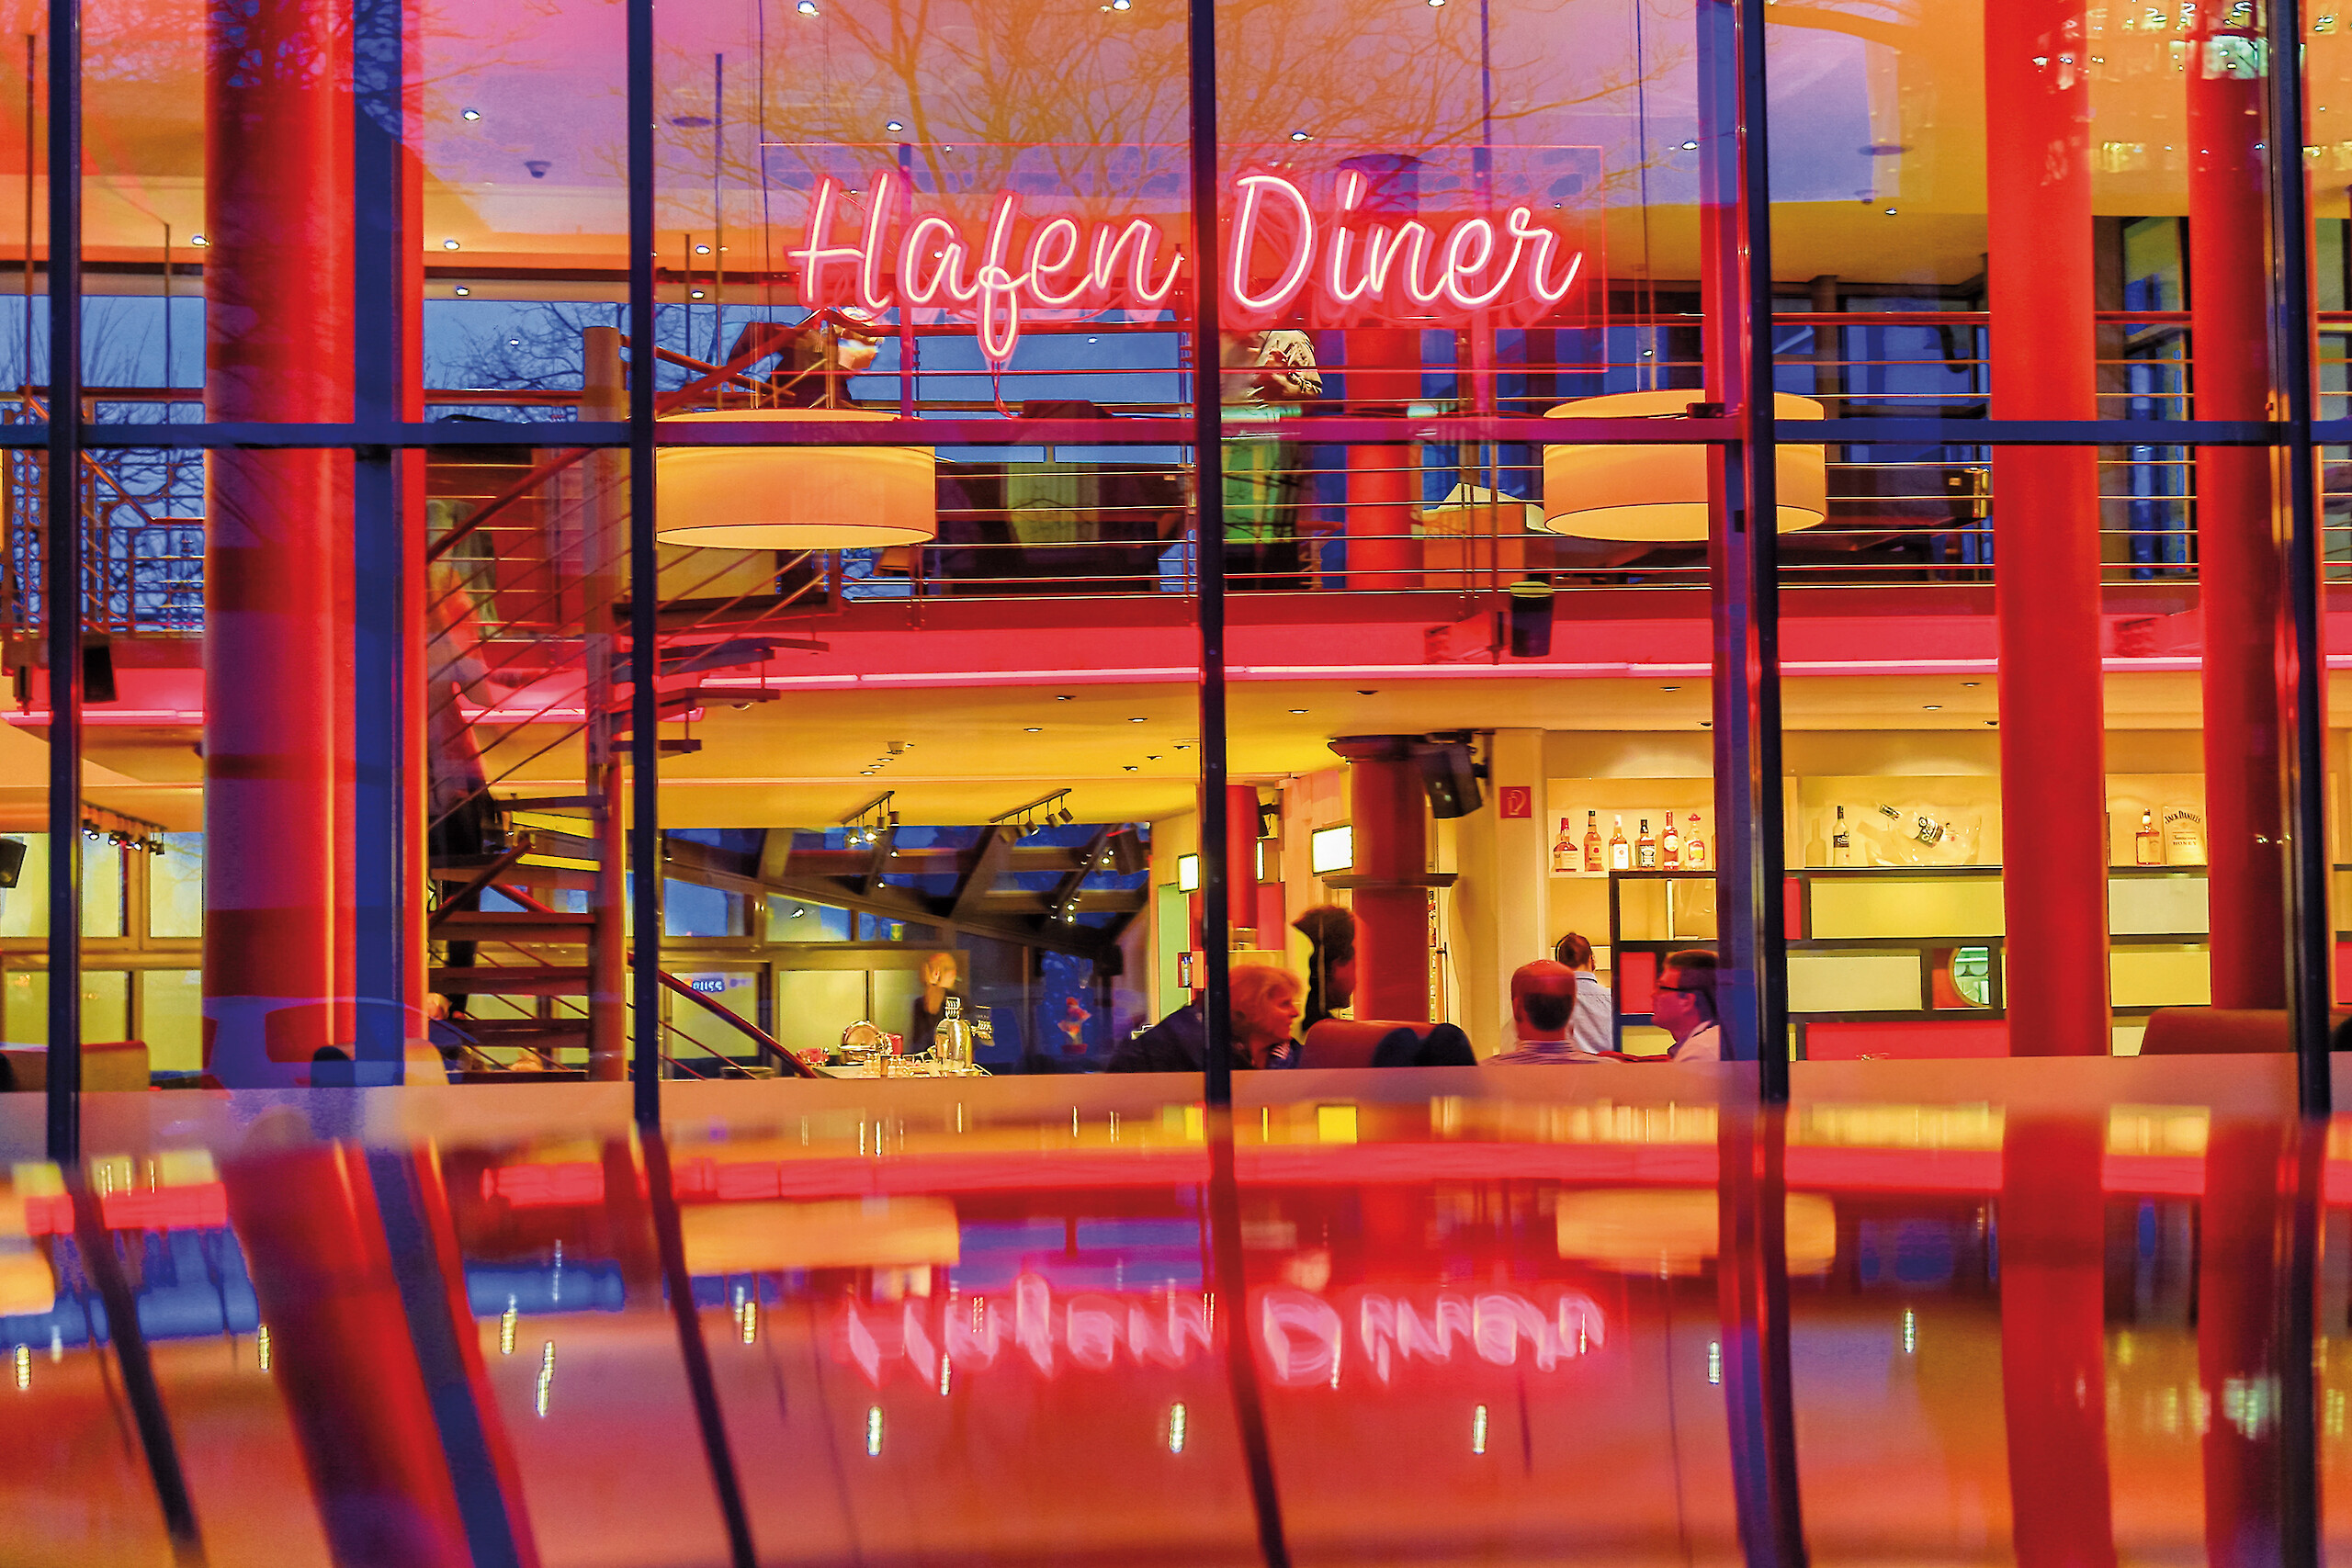 An exterior view of the Harbor Diner with a neon glowing sign